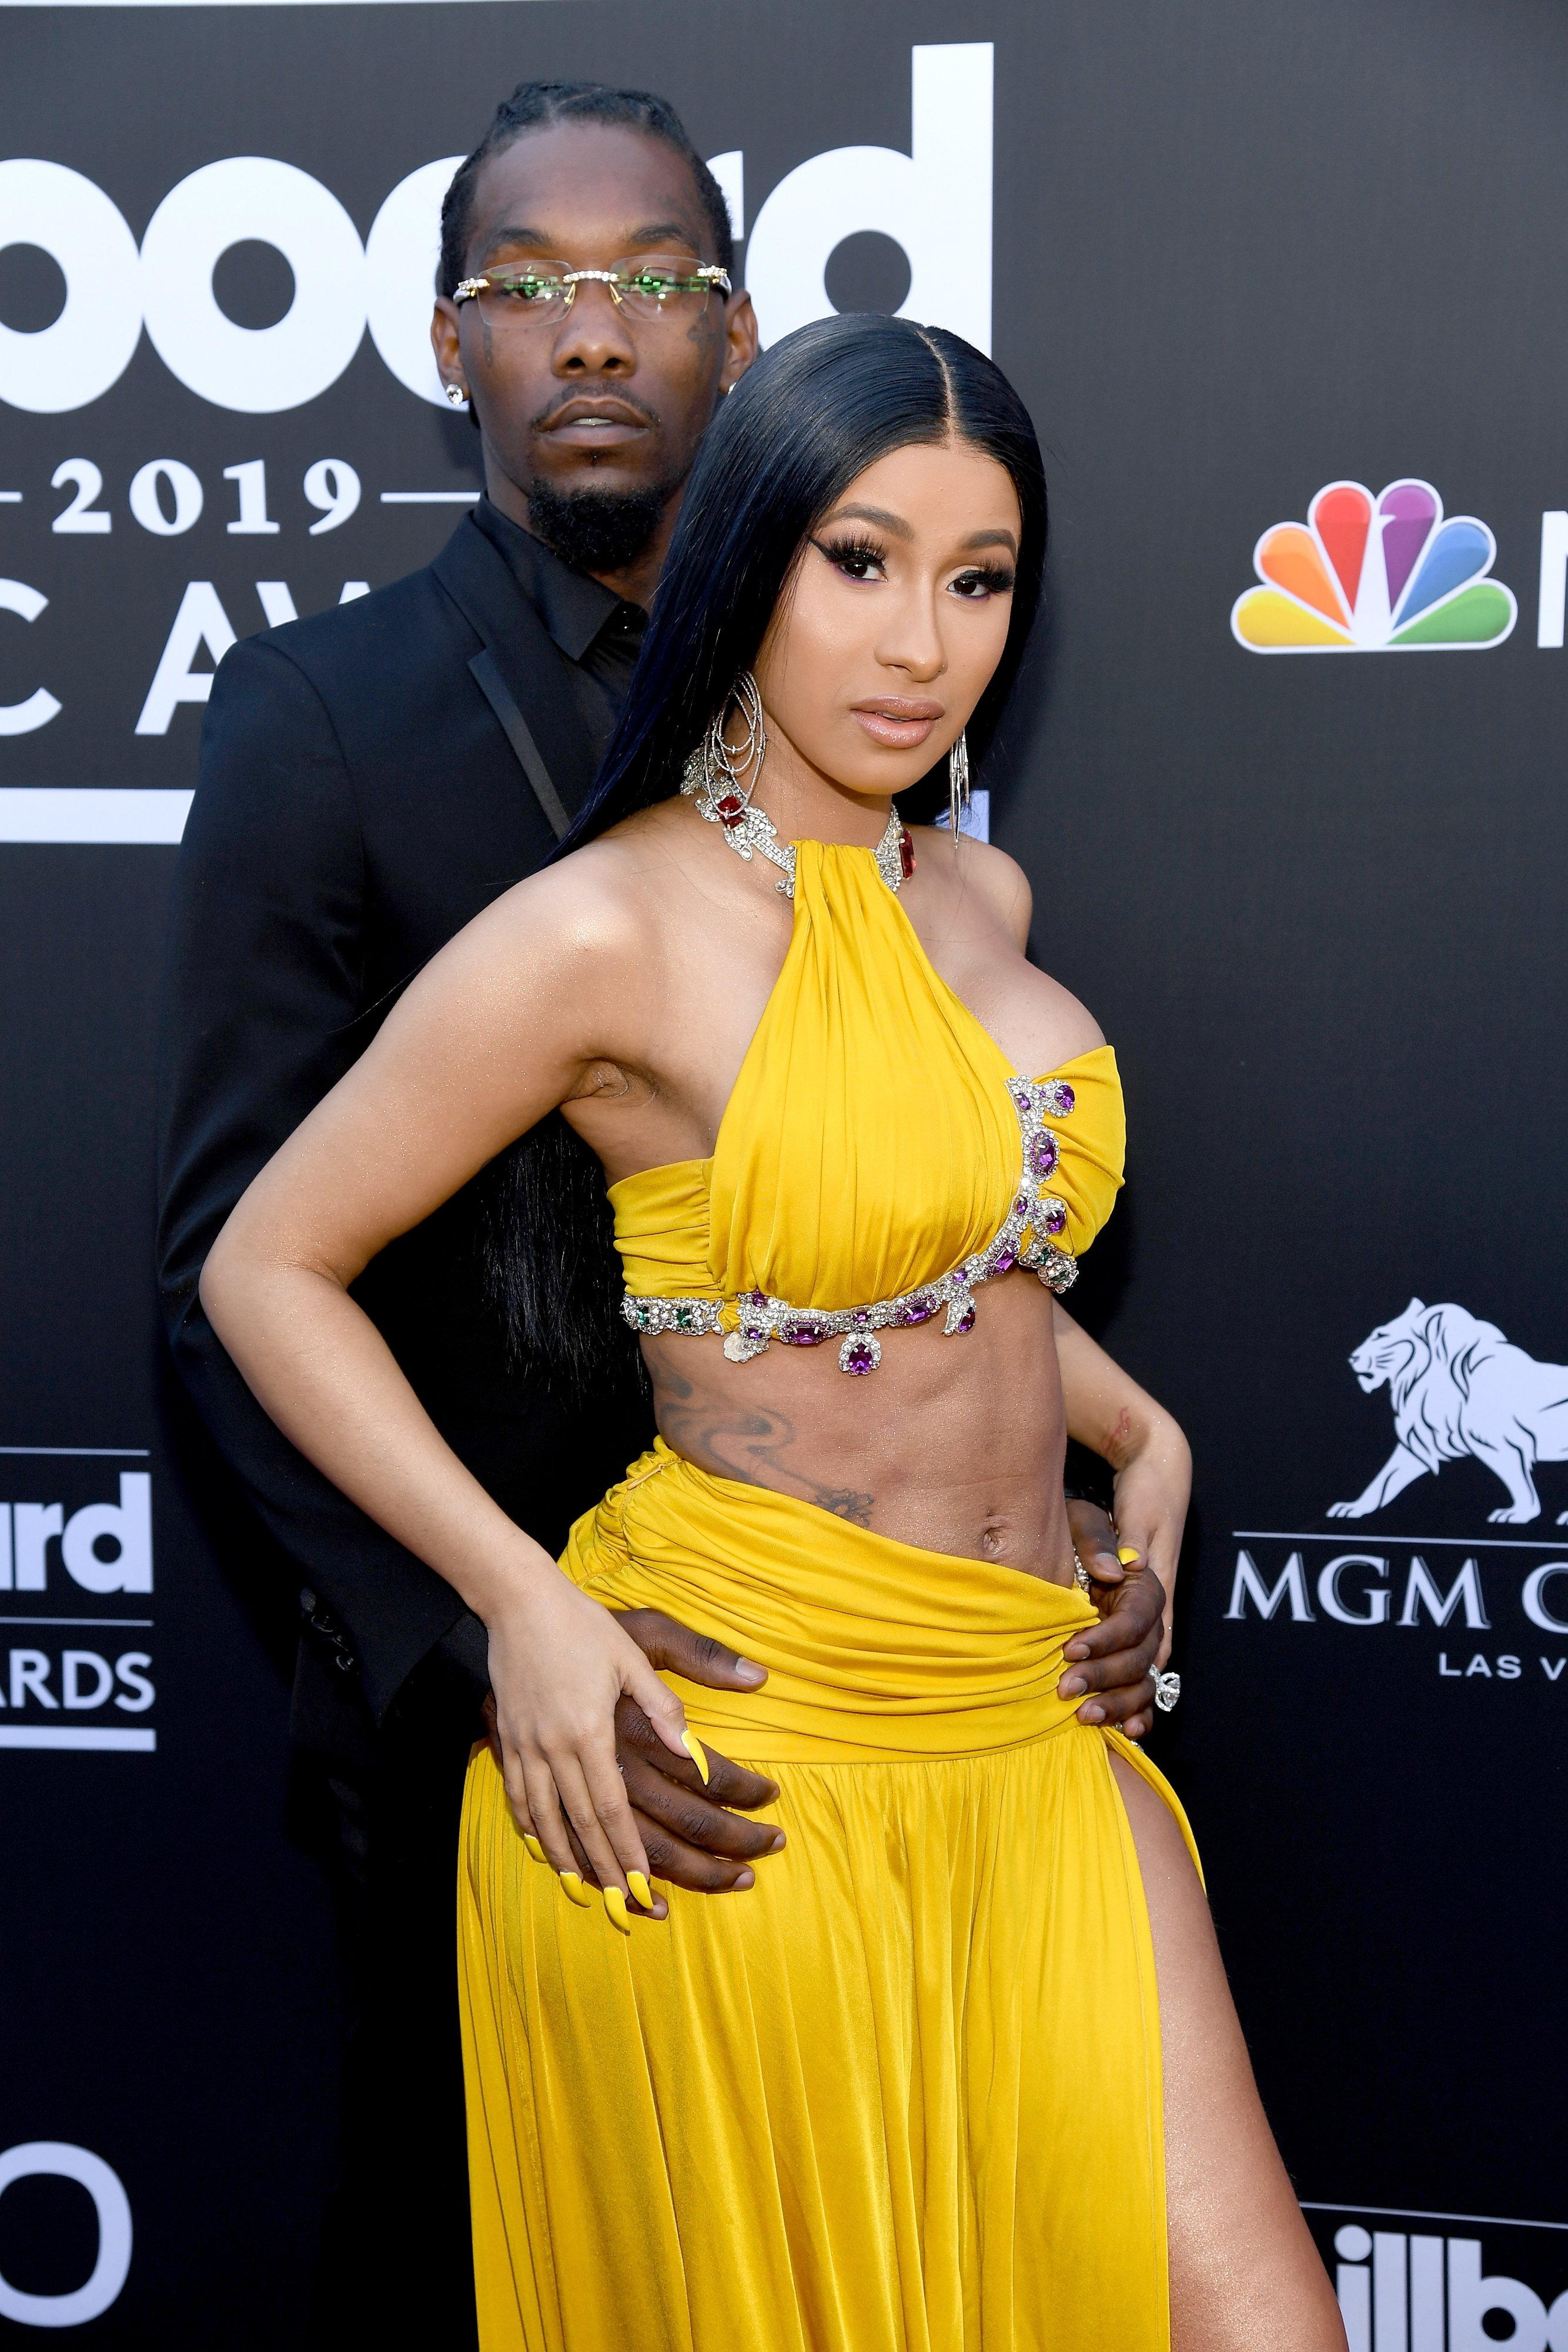 Offset and Cardi B at the 2019 Billboard Music Awards, 2019 in Las Vegas, Nevada   Source: Getty Images